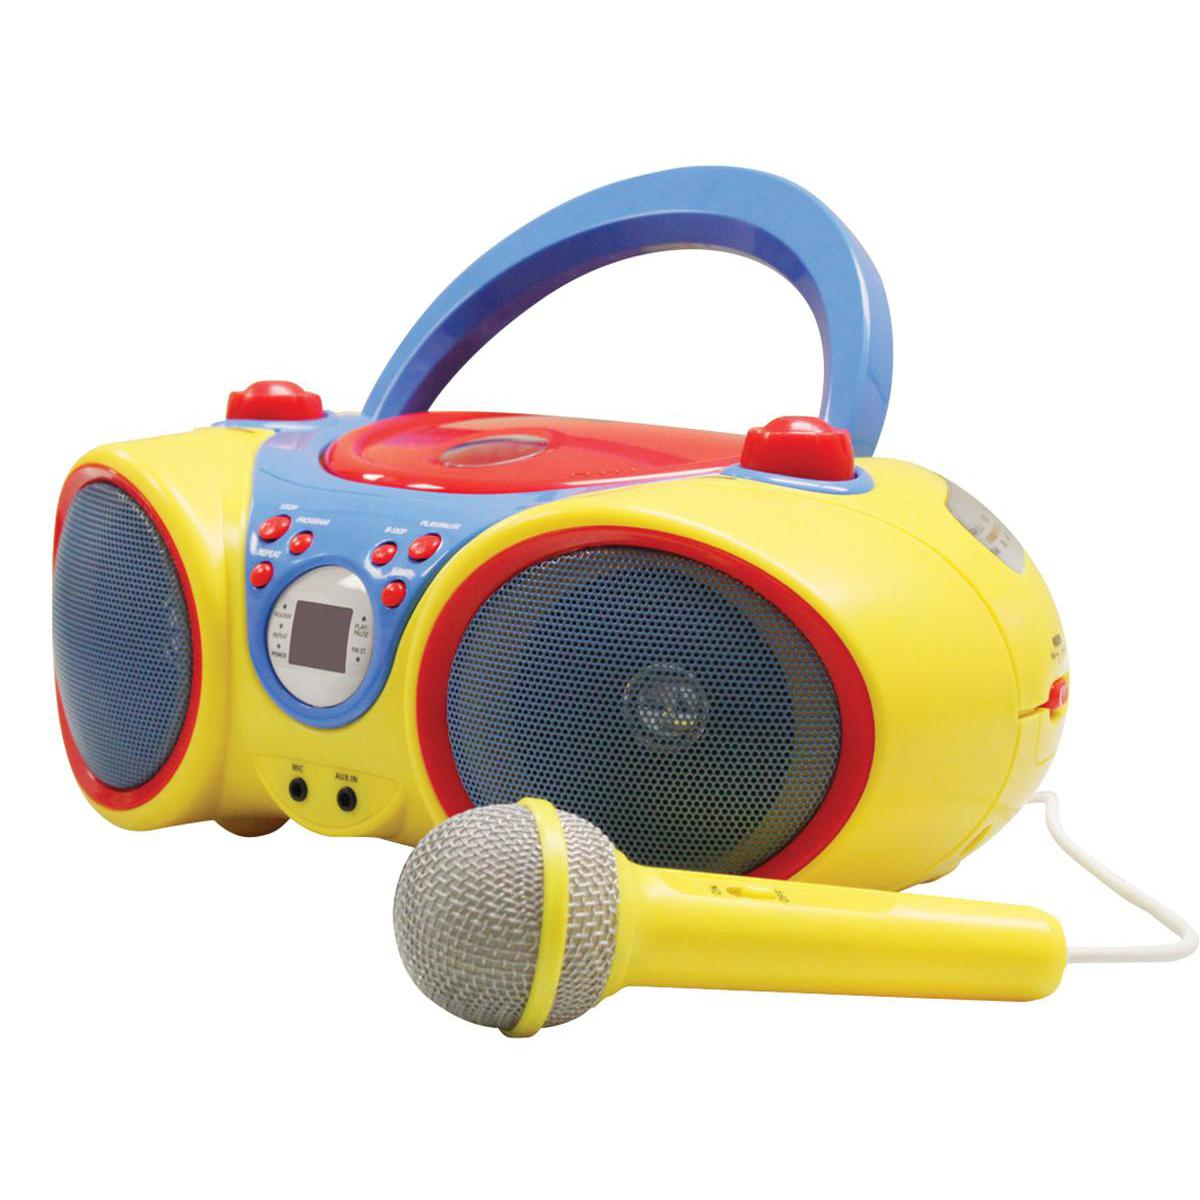 Kid's Audio CD Player Karaoke Machine with Microphone